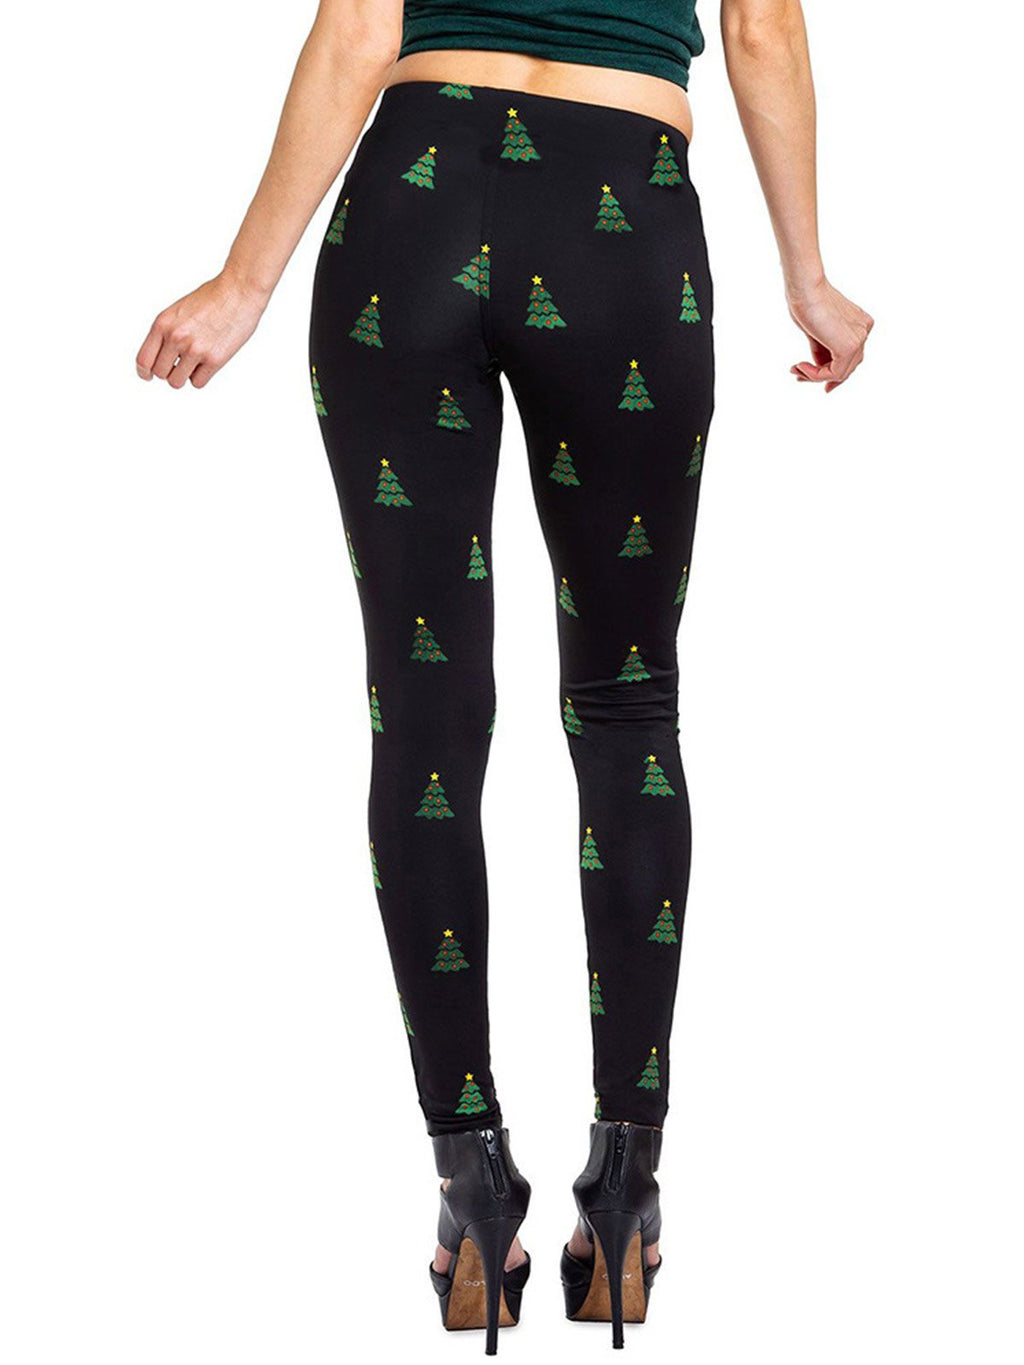 Xmas Theme Candy Cane Print Casaul Pants